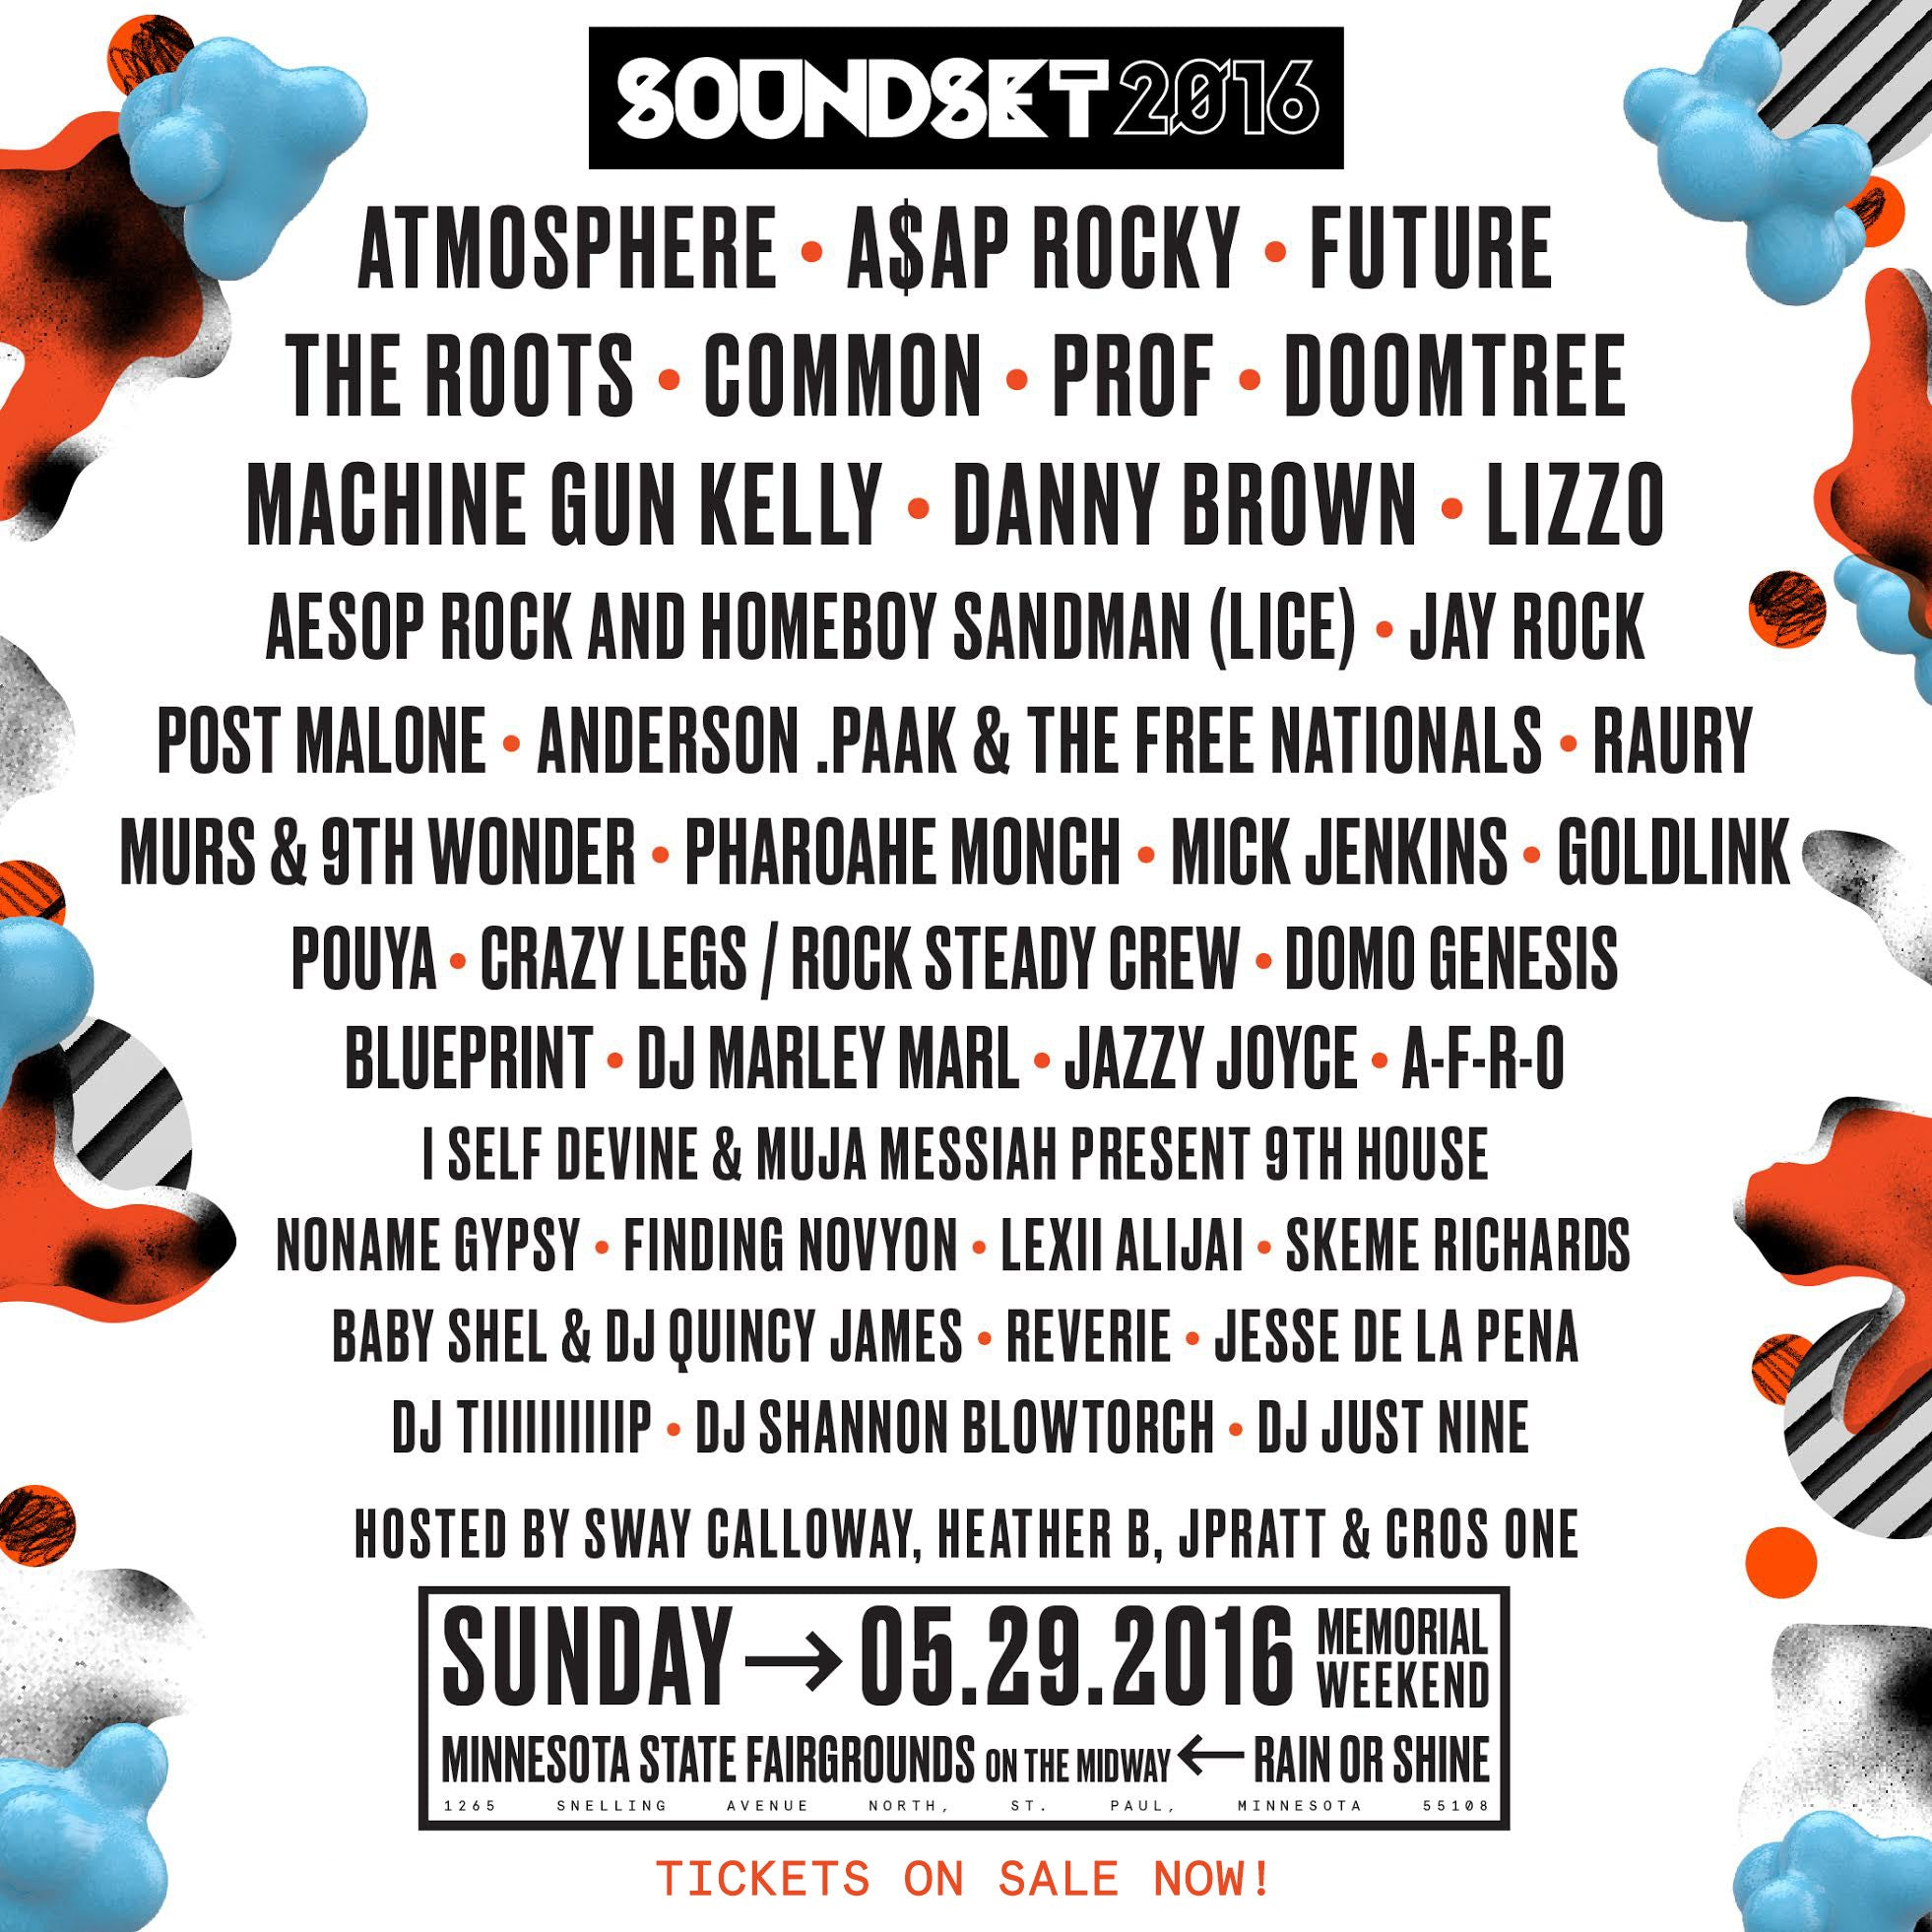 Soundset 2016 Tickets Available at Fifth Element